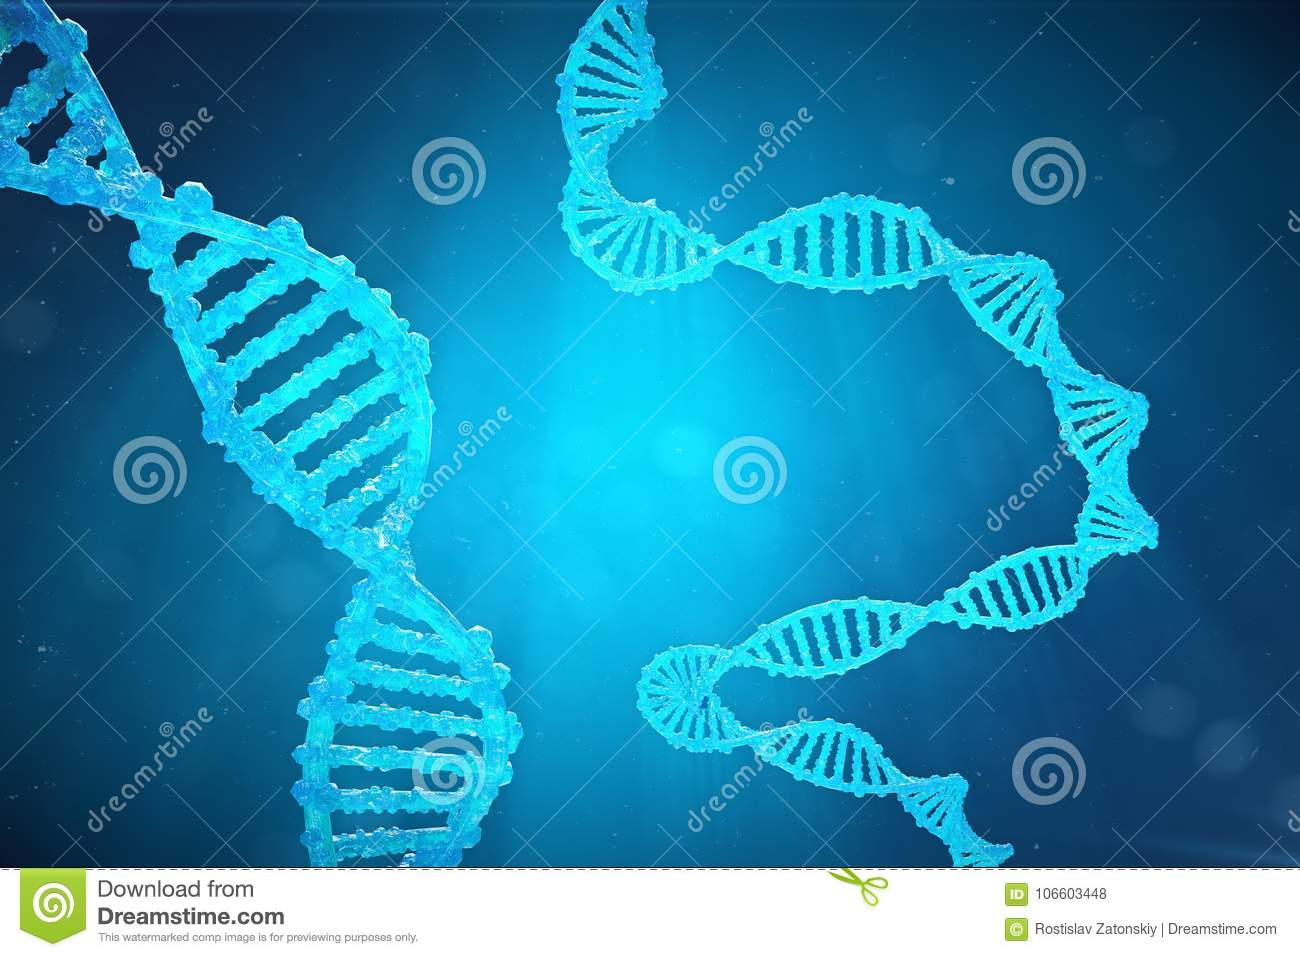 Helix DNA molecule with modified genes. Correcting mutation by genetic engineering. Concept Molecular genetics, 3d